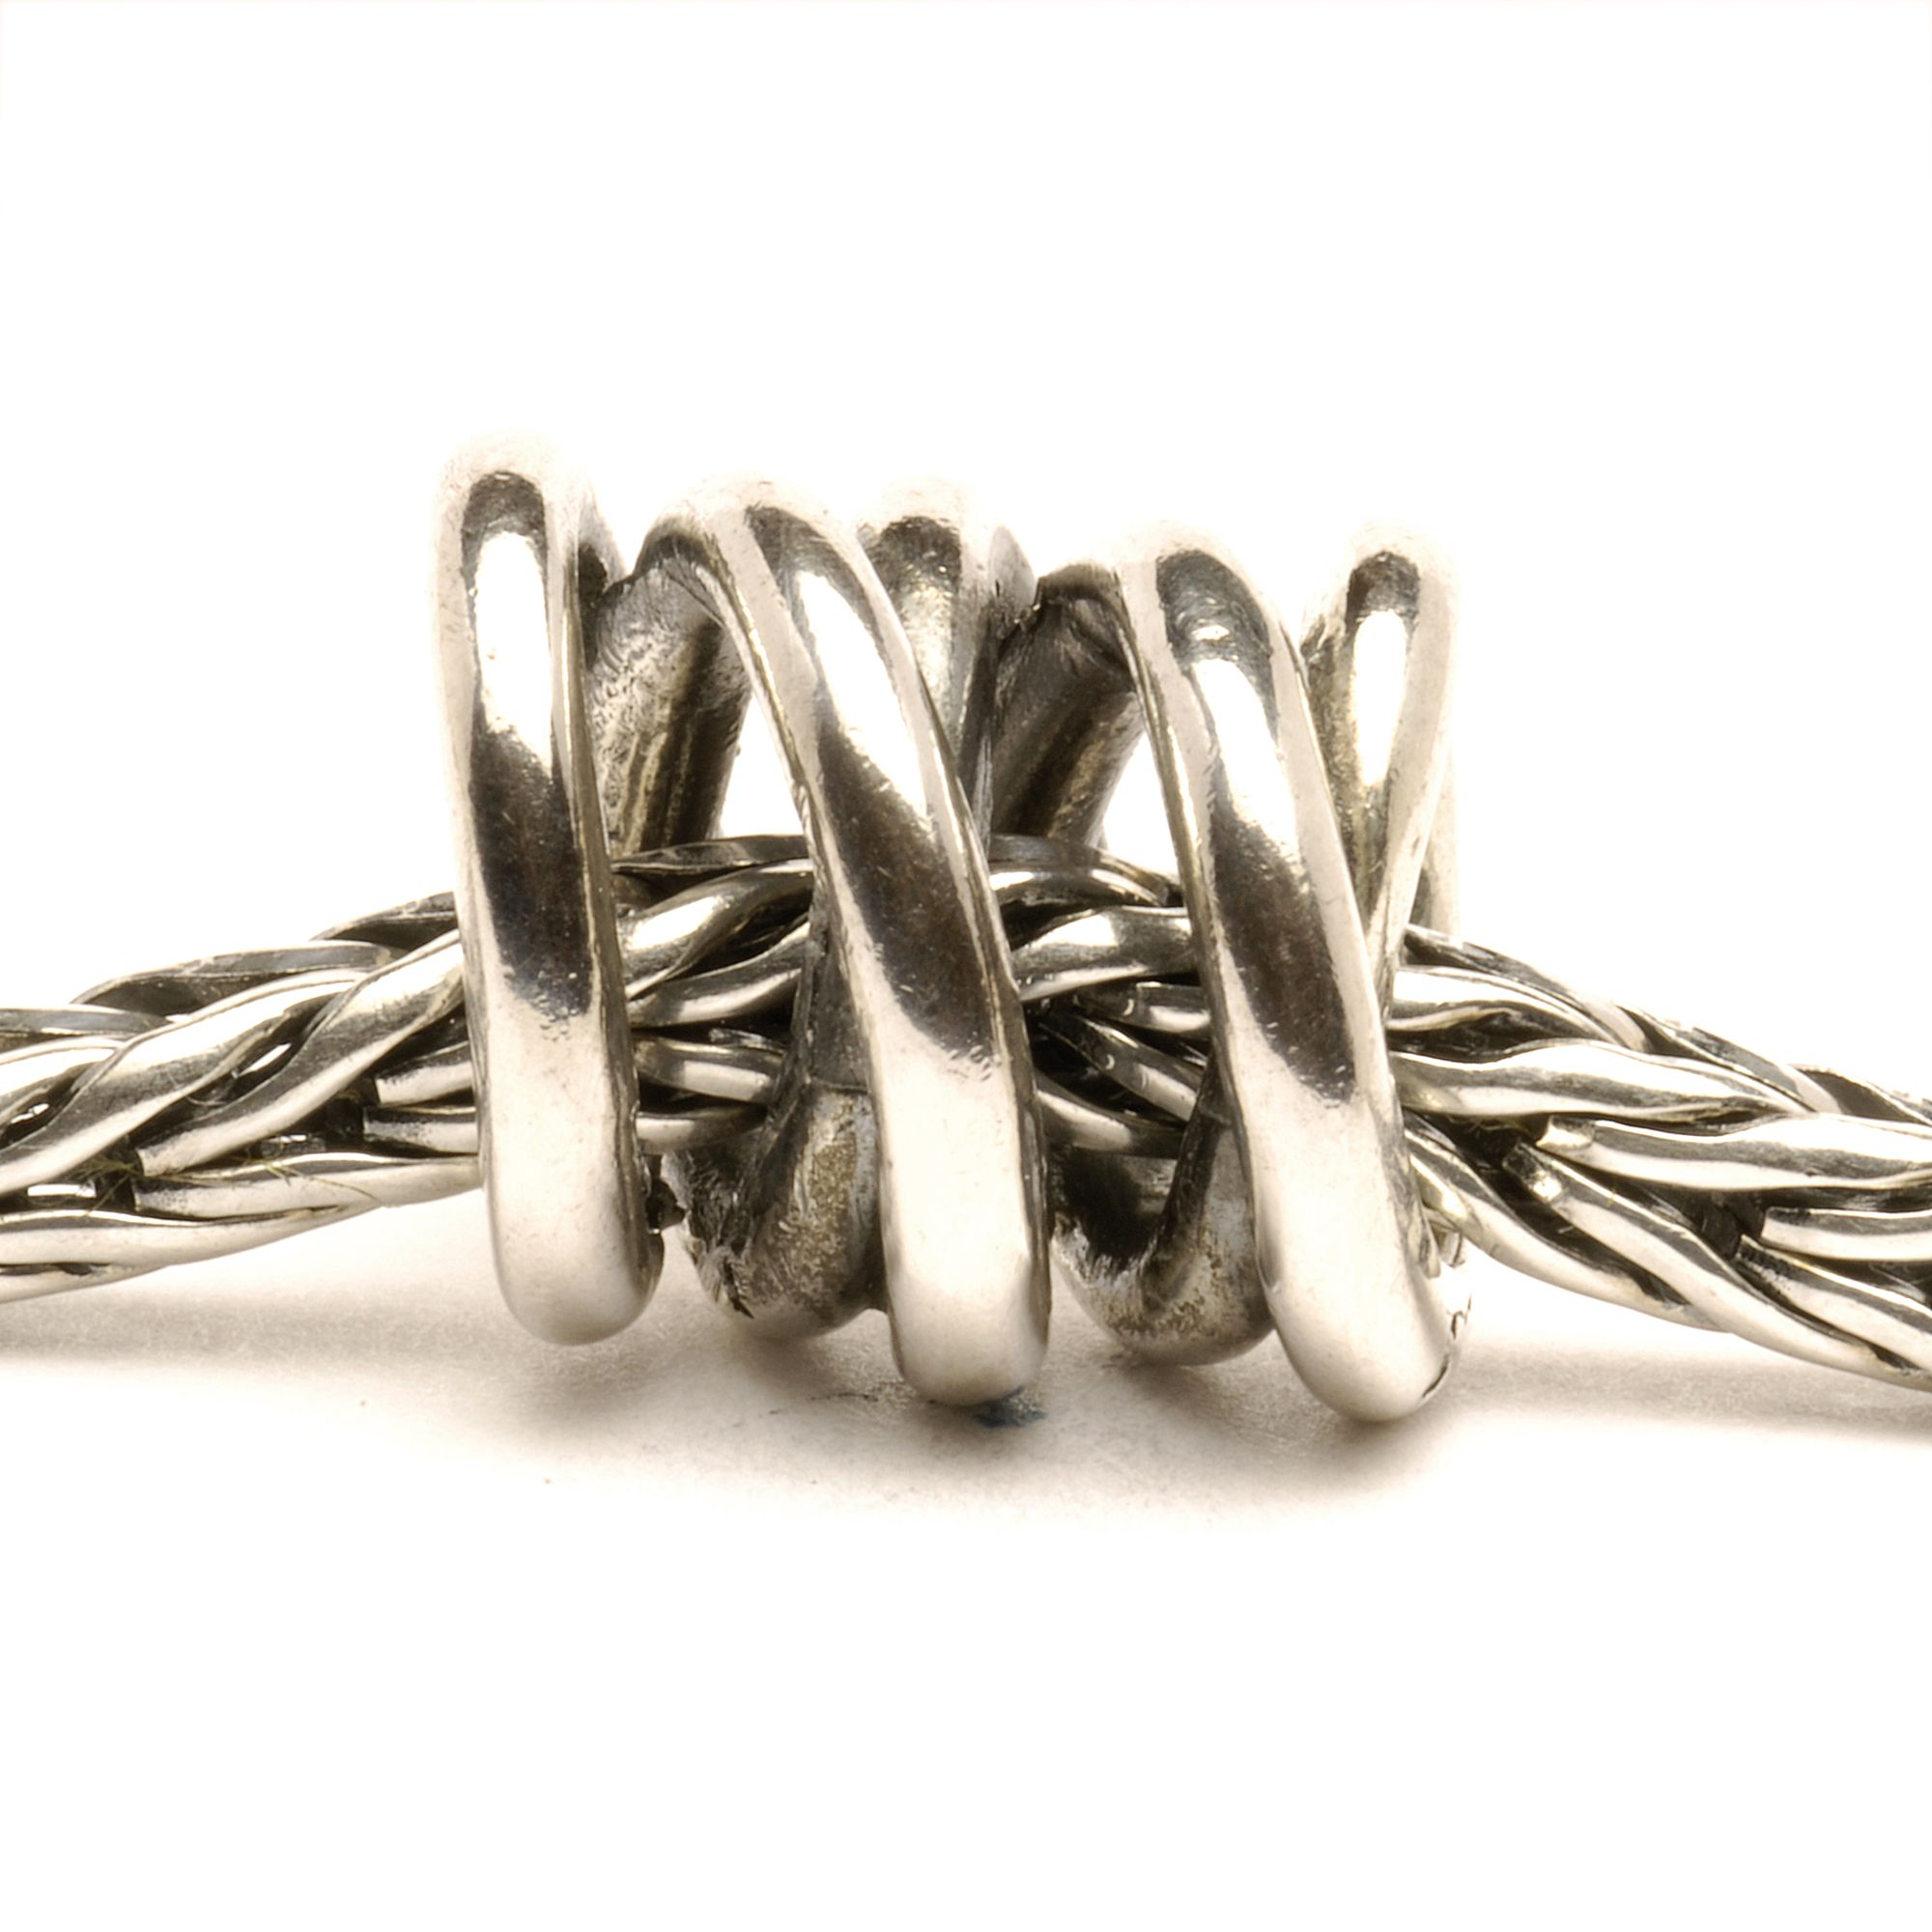 Three Siblings silver charm bead